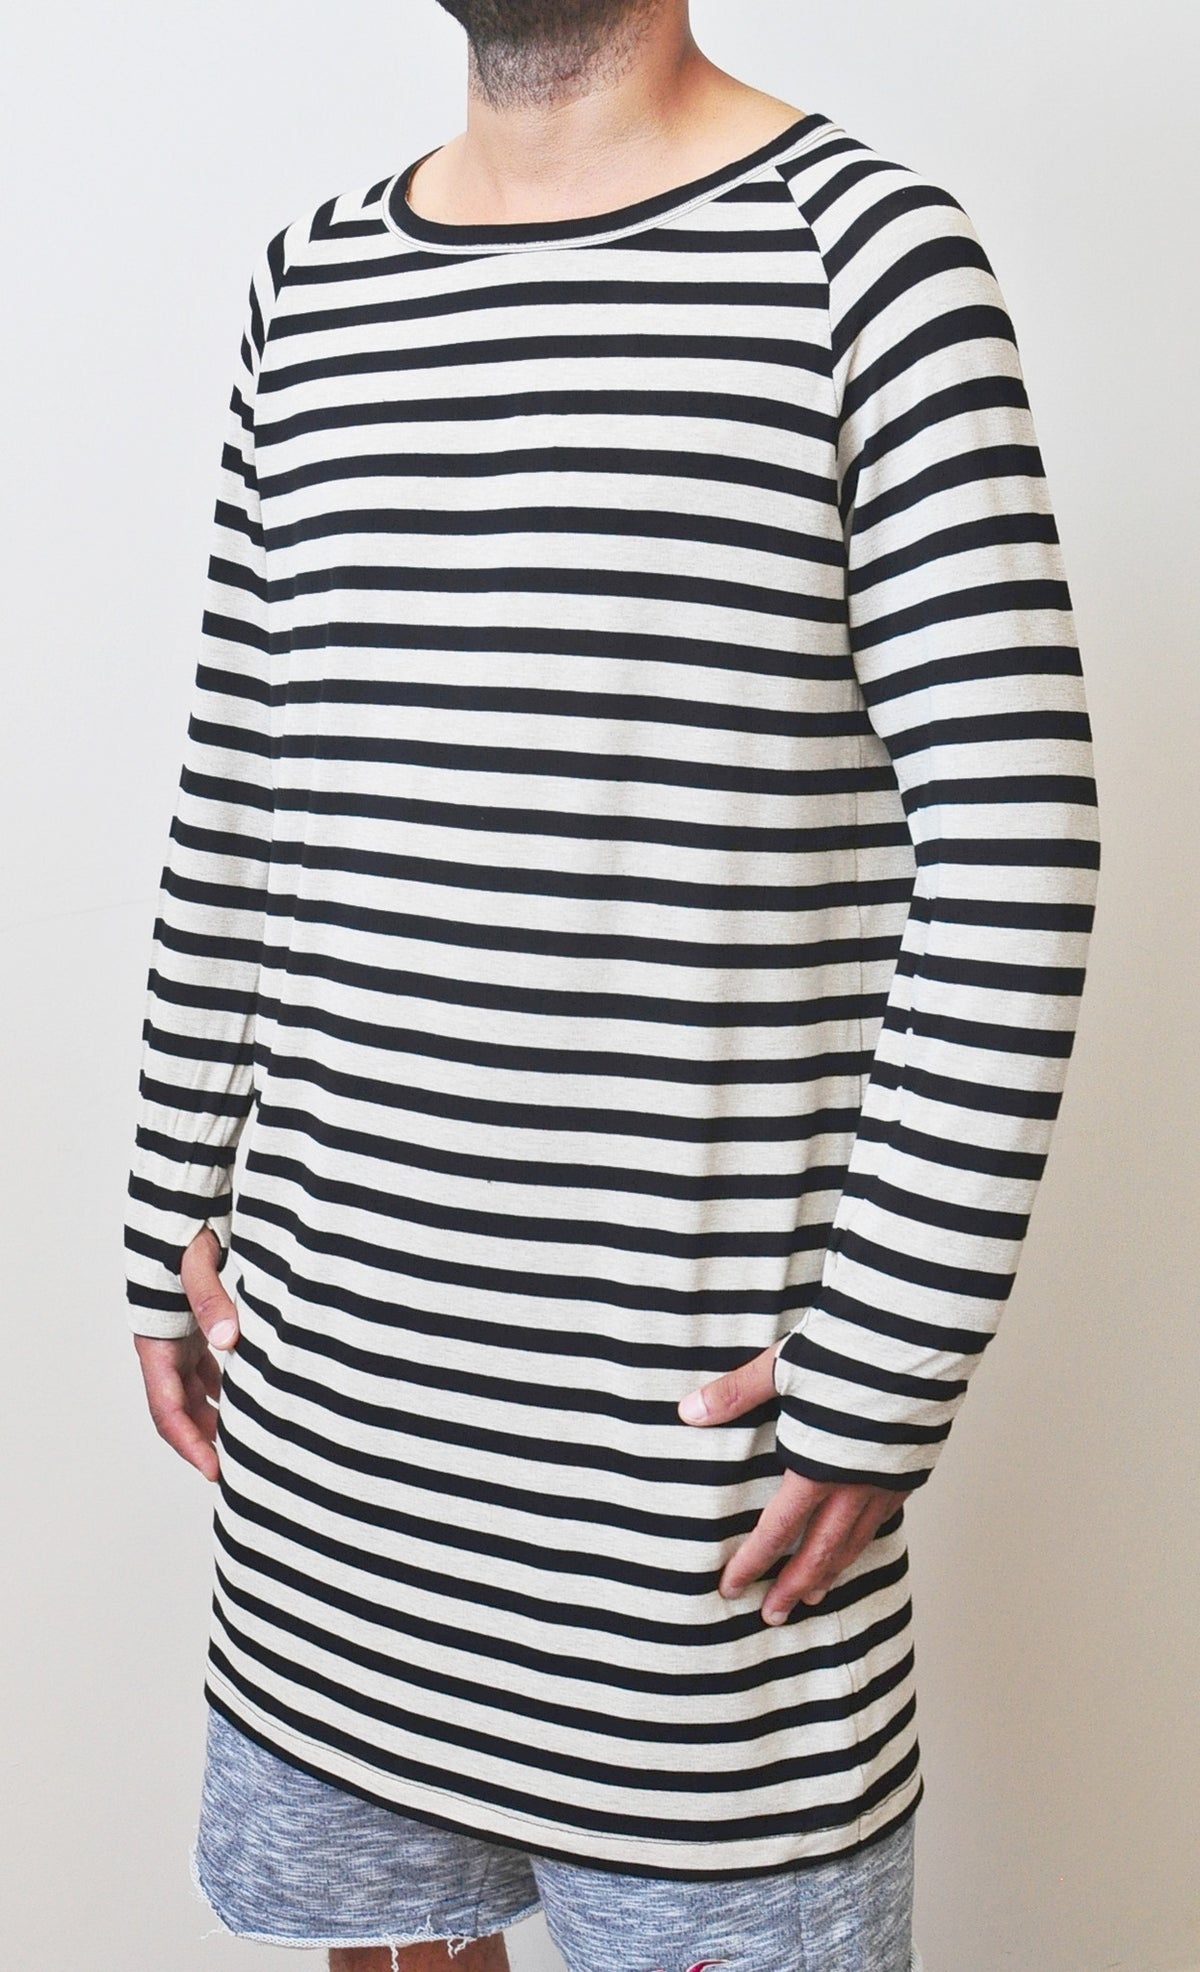 Striped Black/Beige Under Scoop Knit T-shirt - Extended Overlong Long Sleeve - -  Drop Shoulder Centre back seam